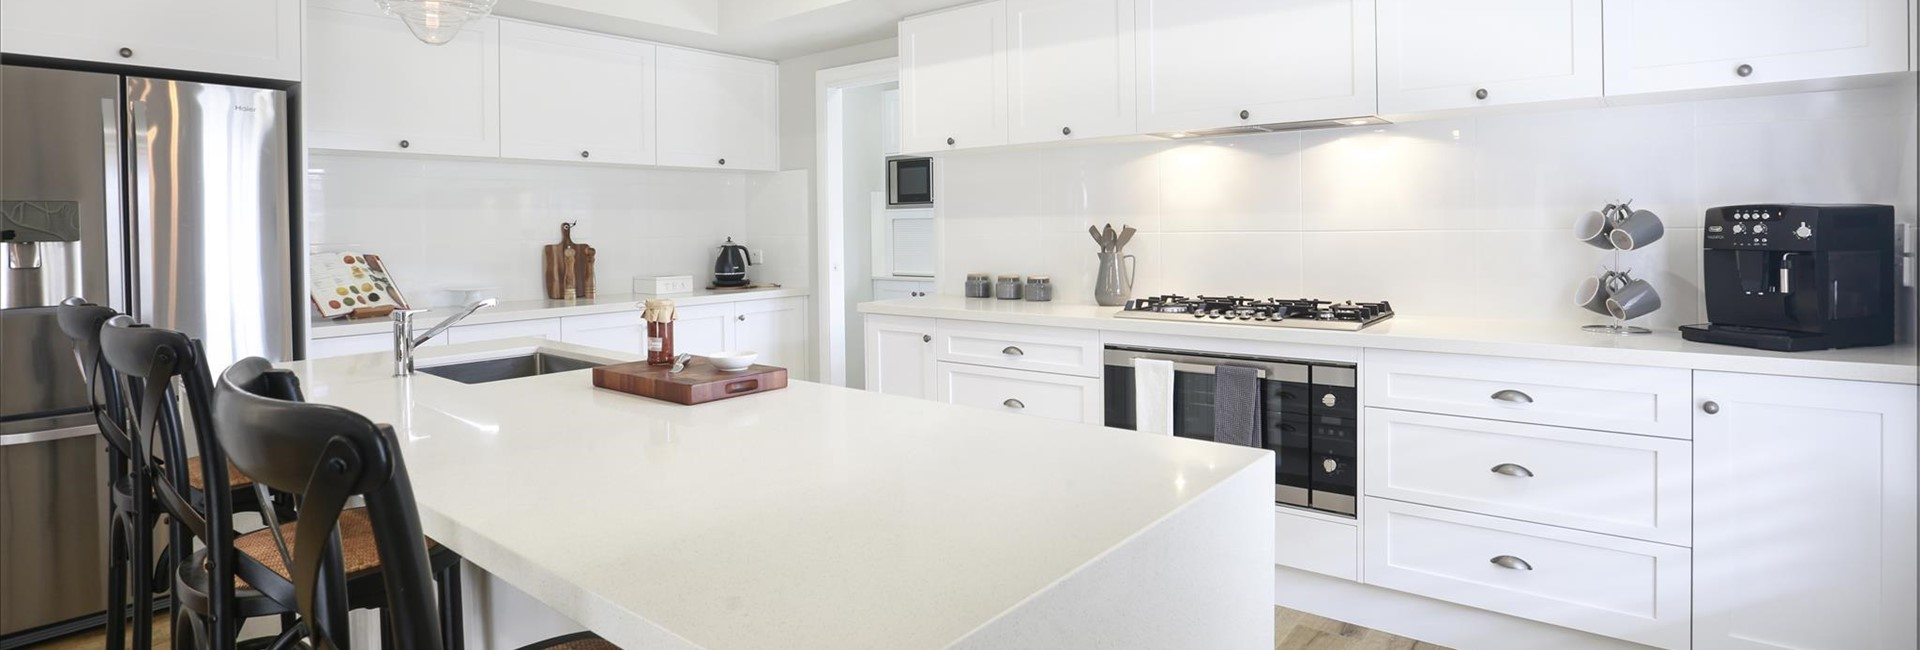 white waterfall ends kitchen renovation brisbane